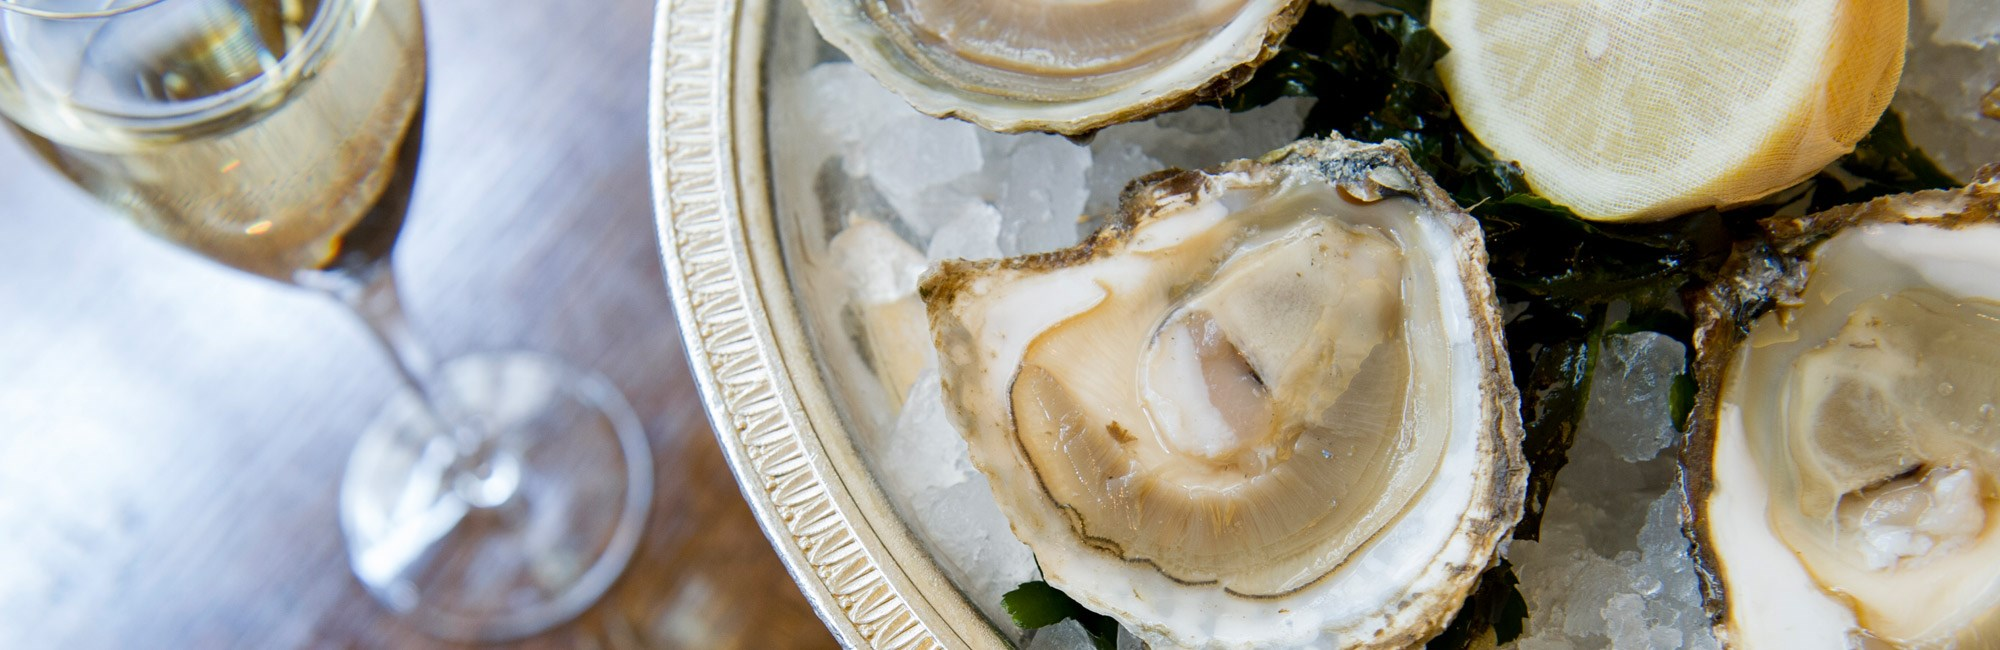 oysters champagne at j sheekey atlantic bar by sim canetty clarke